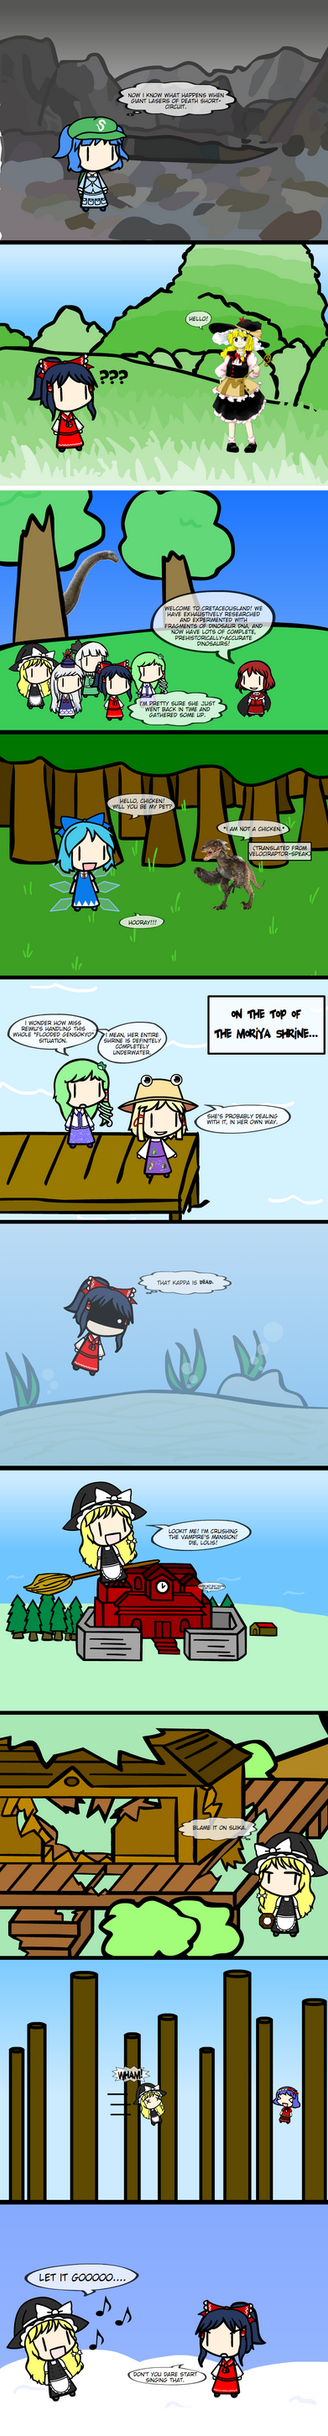 Touhou Oneshots Volume 3 by SubterraneanGamer